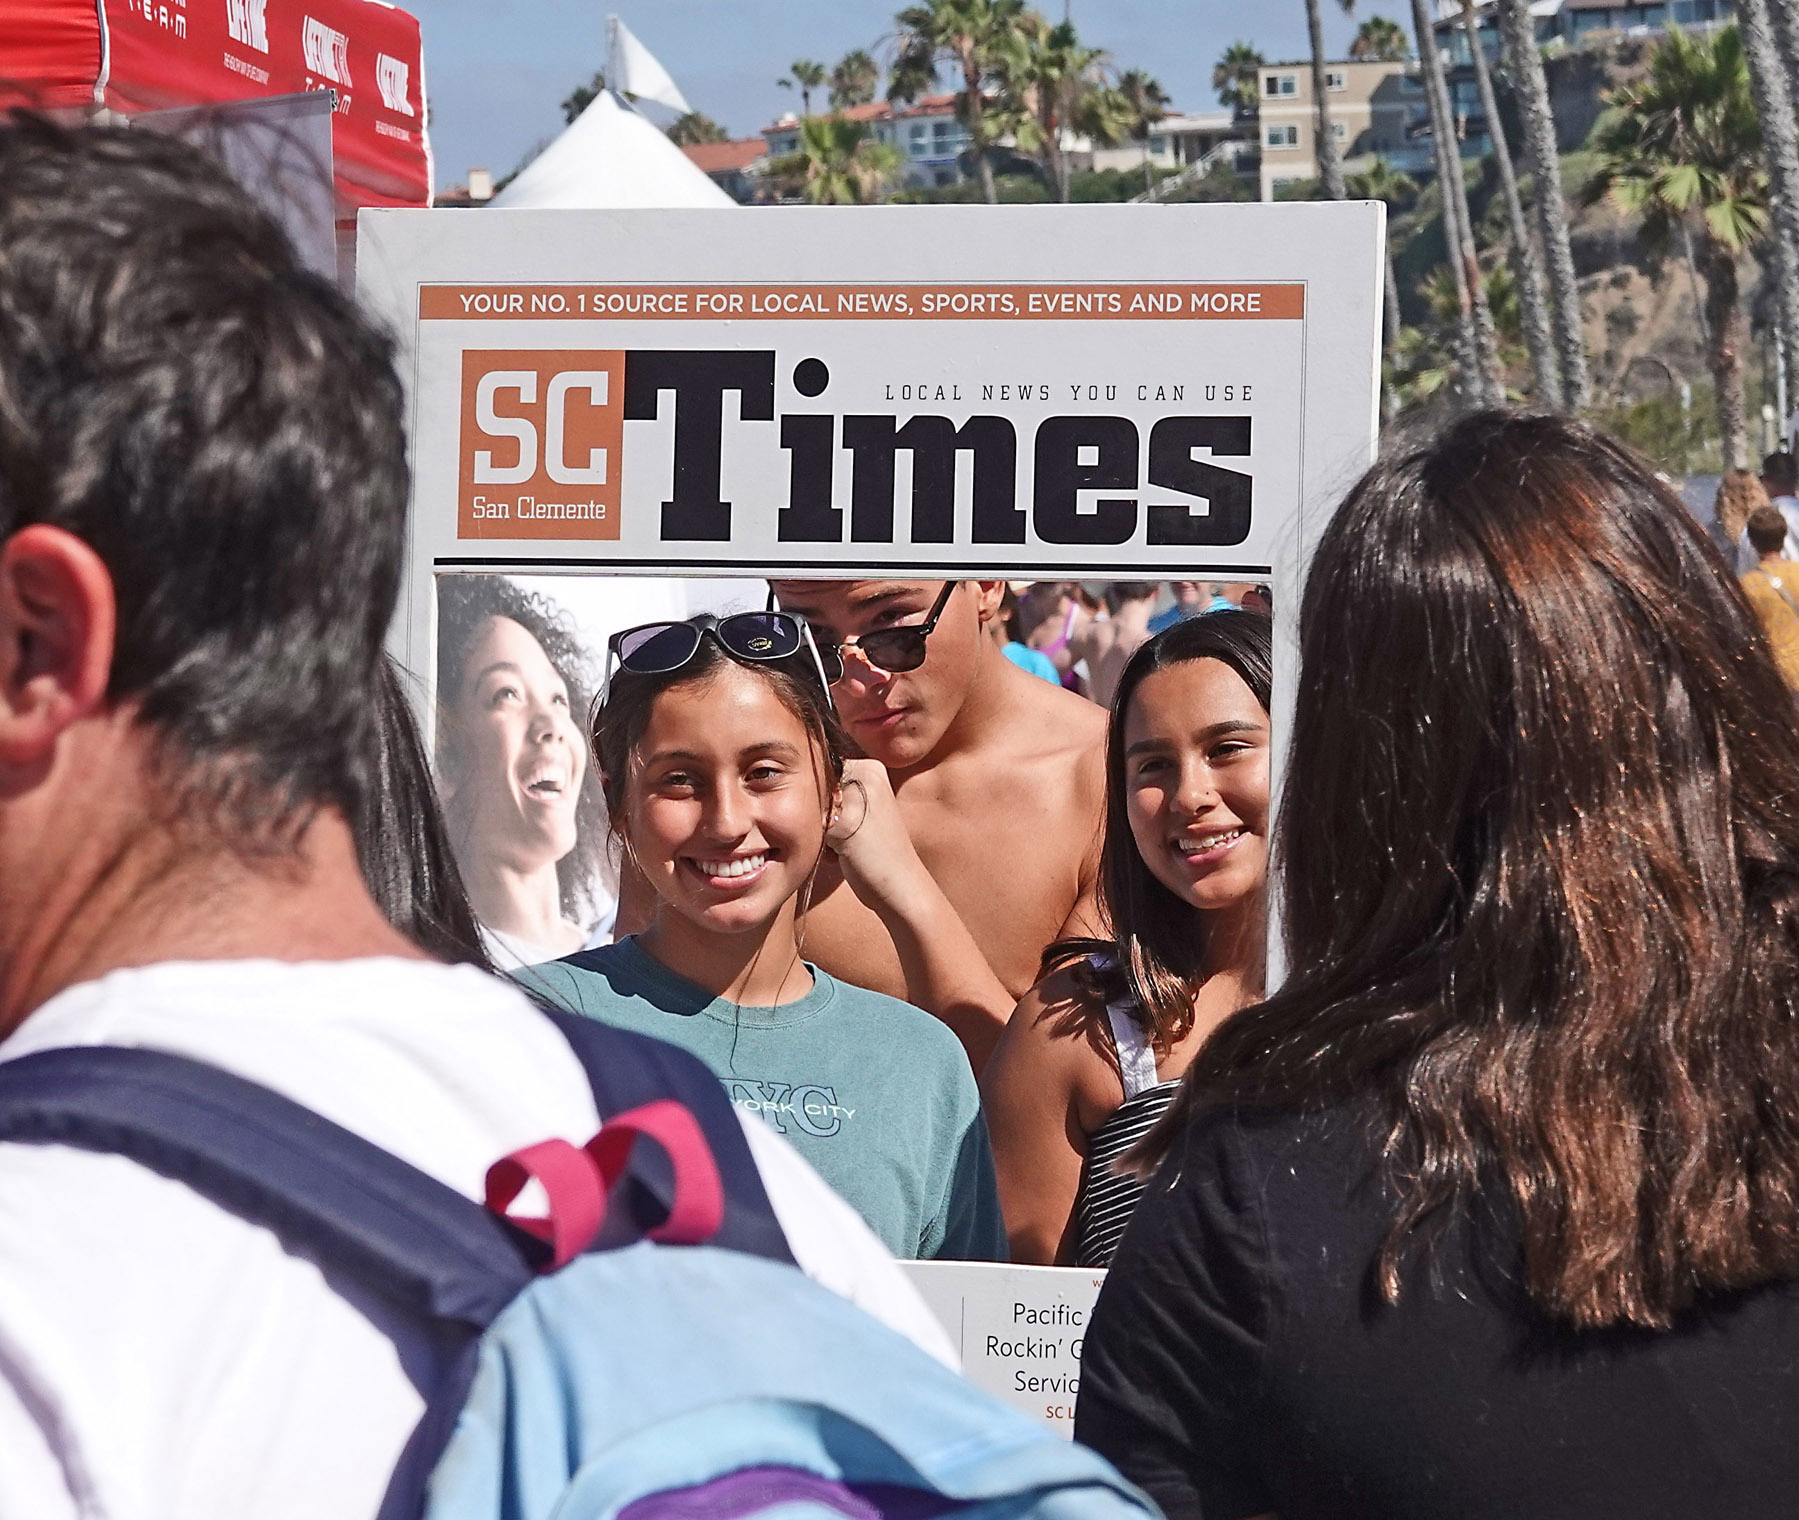 Serenity Ferris, Devin Baca and Lacey Rodriguez from Moreno Valley rode the beach train to the San Clemente Ocean Festival. They paused at the SC Times booth to have a friend photograph them as cover celebrities in the San Clemente Times. We have no idea who the person on the cover at left is. She was a face on a booth next door. Photo: Fred Swegles